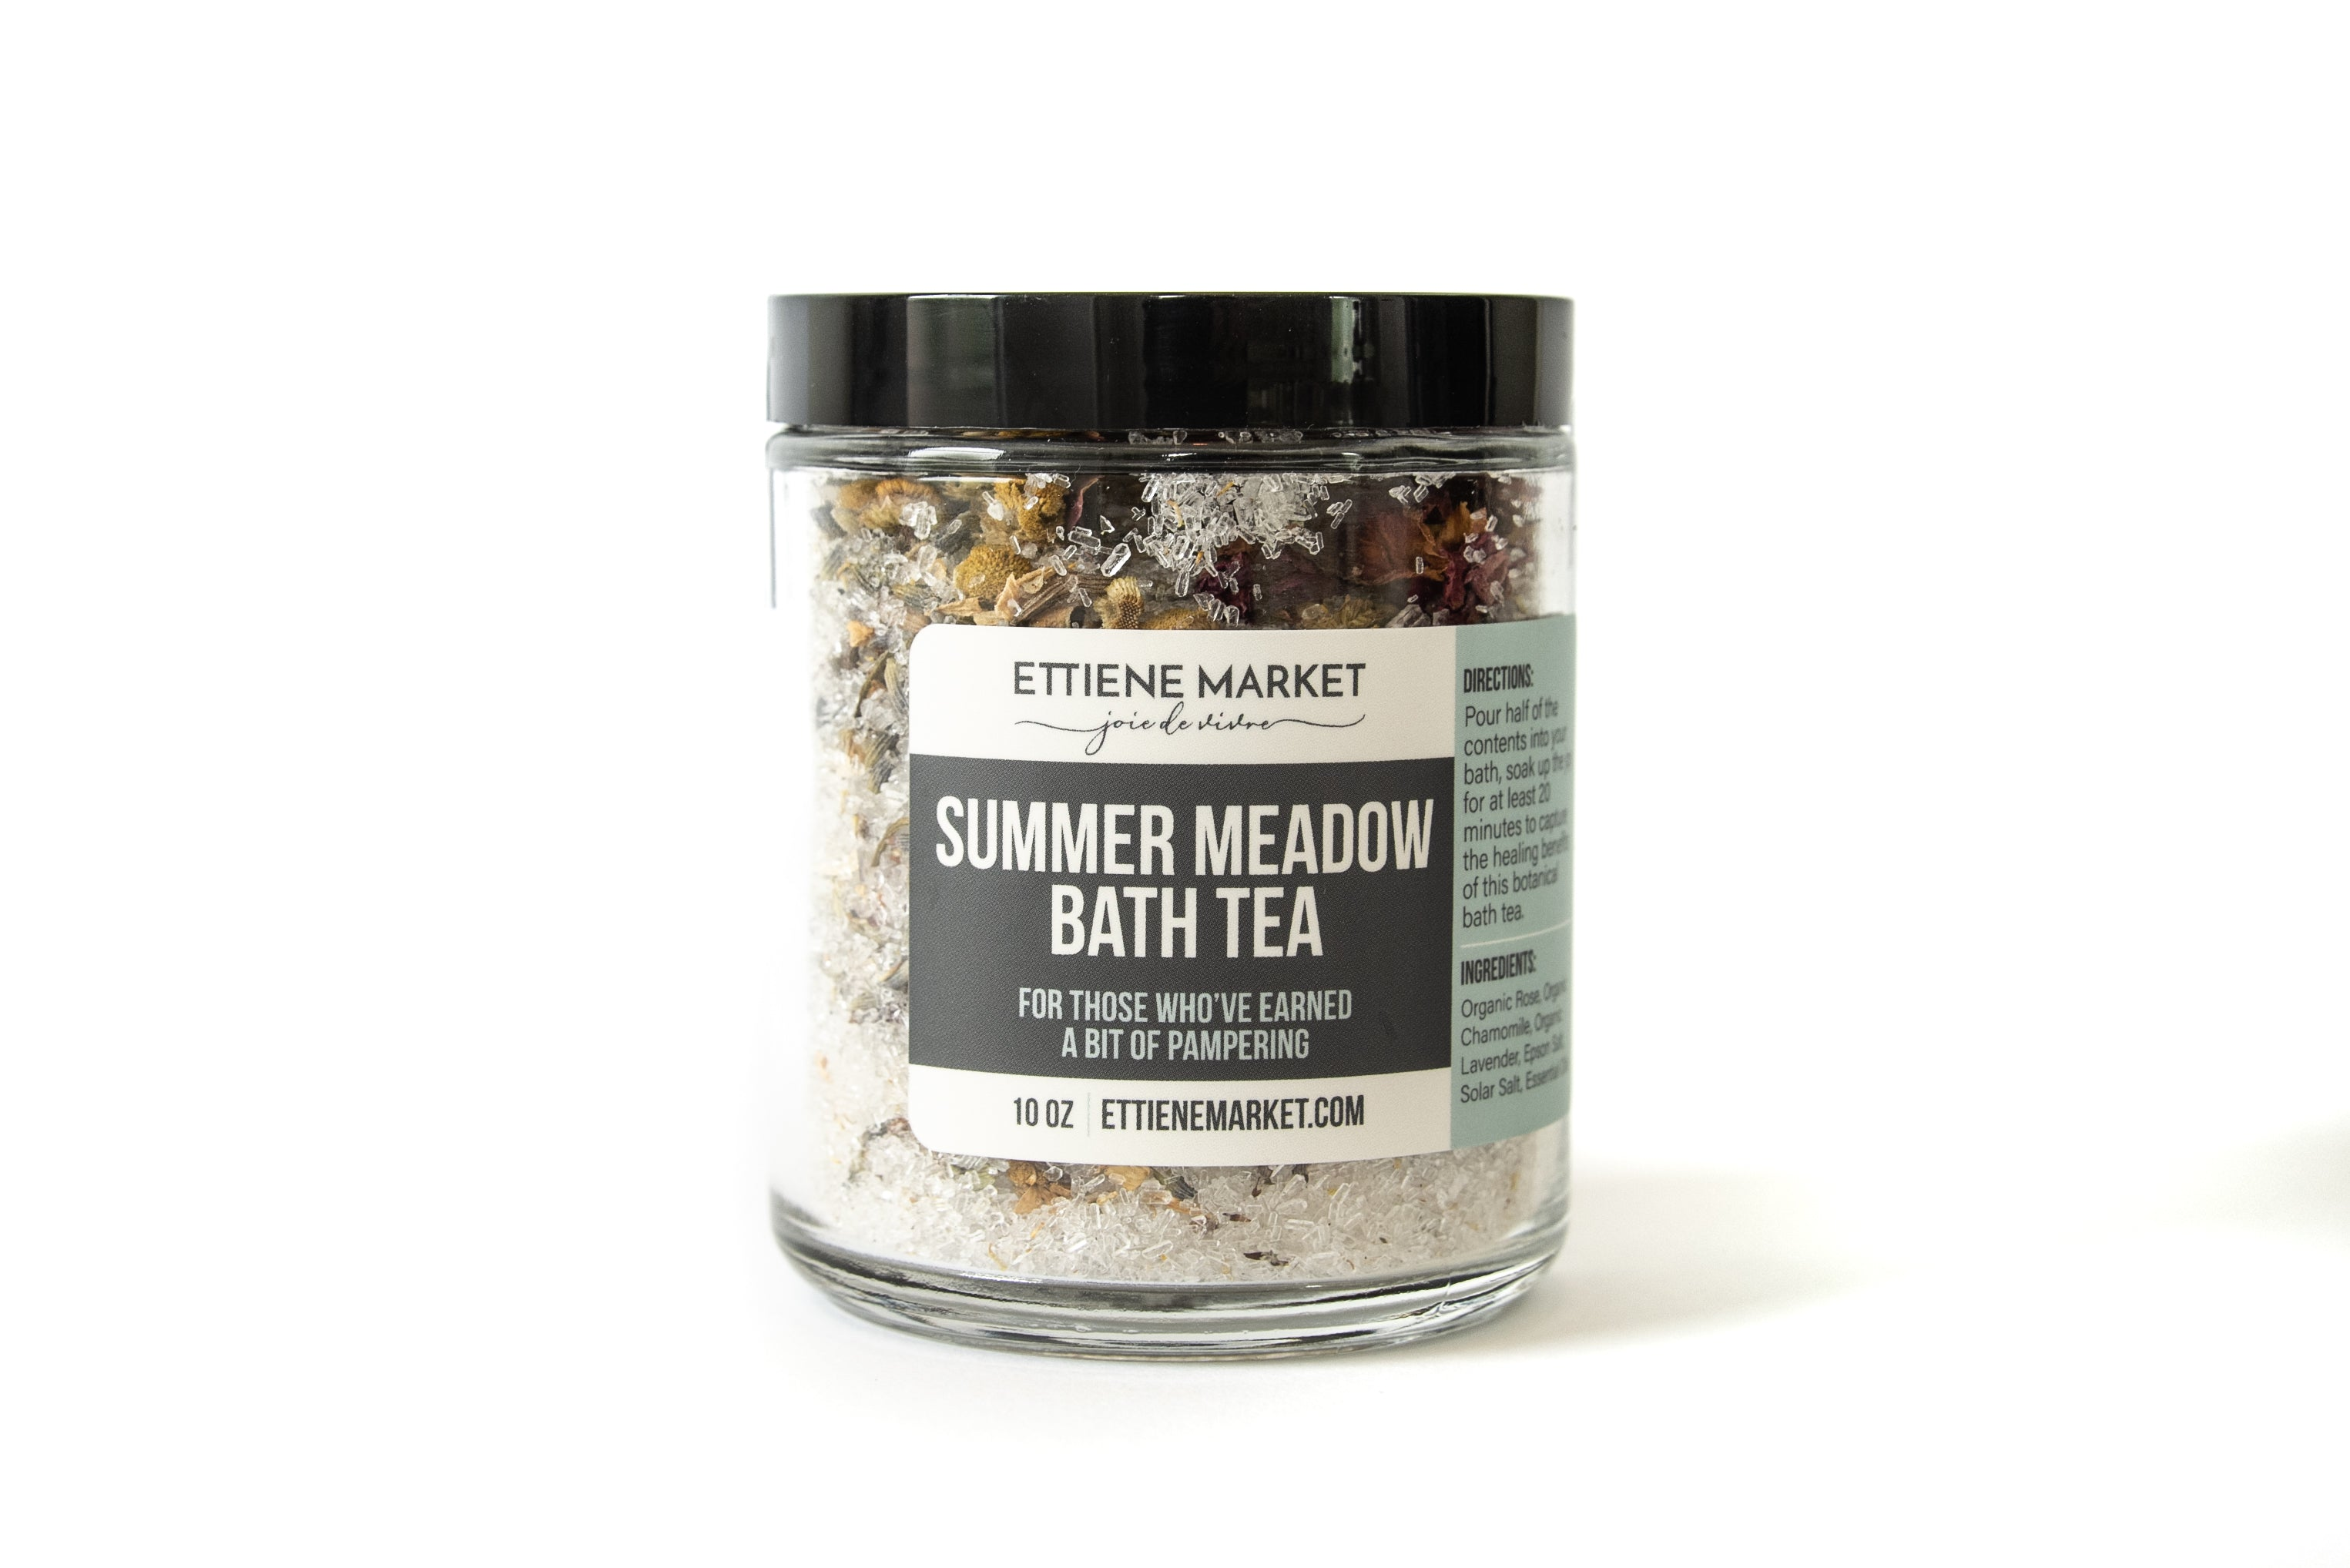 Ettiene Market Summer Meadow Bath Tea